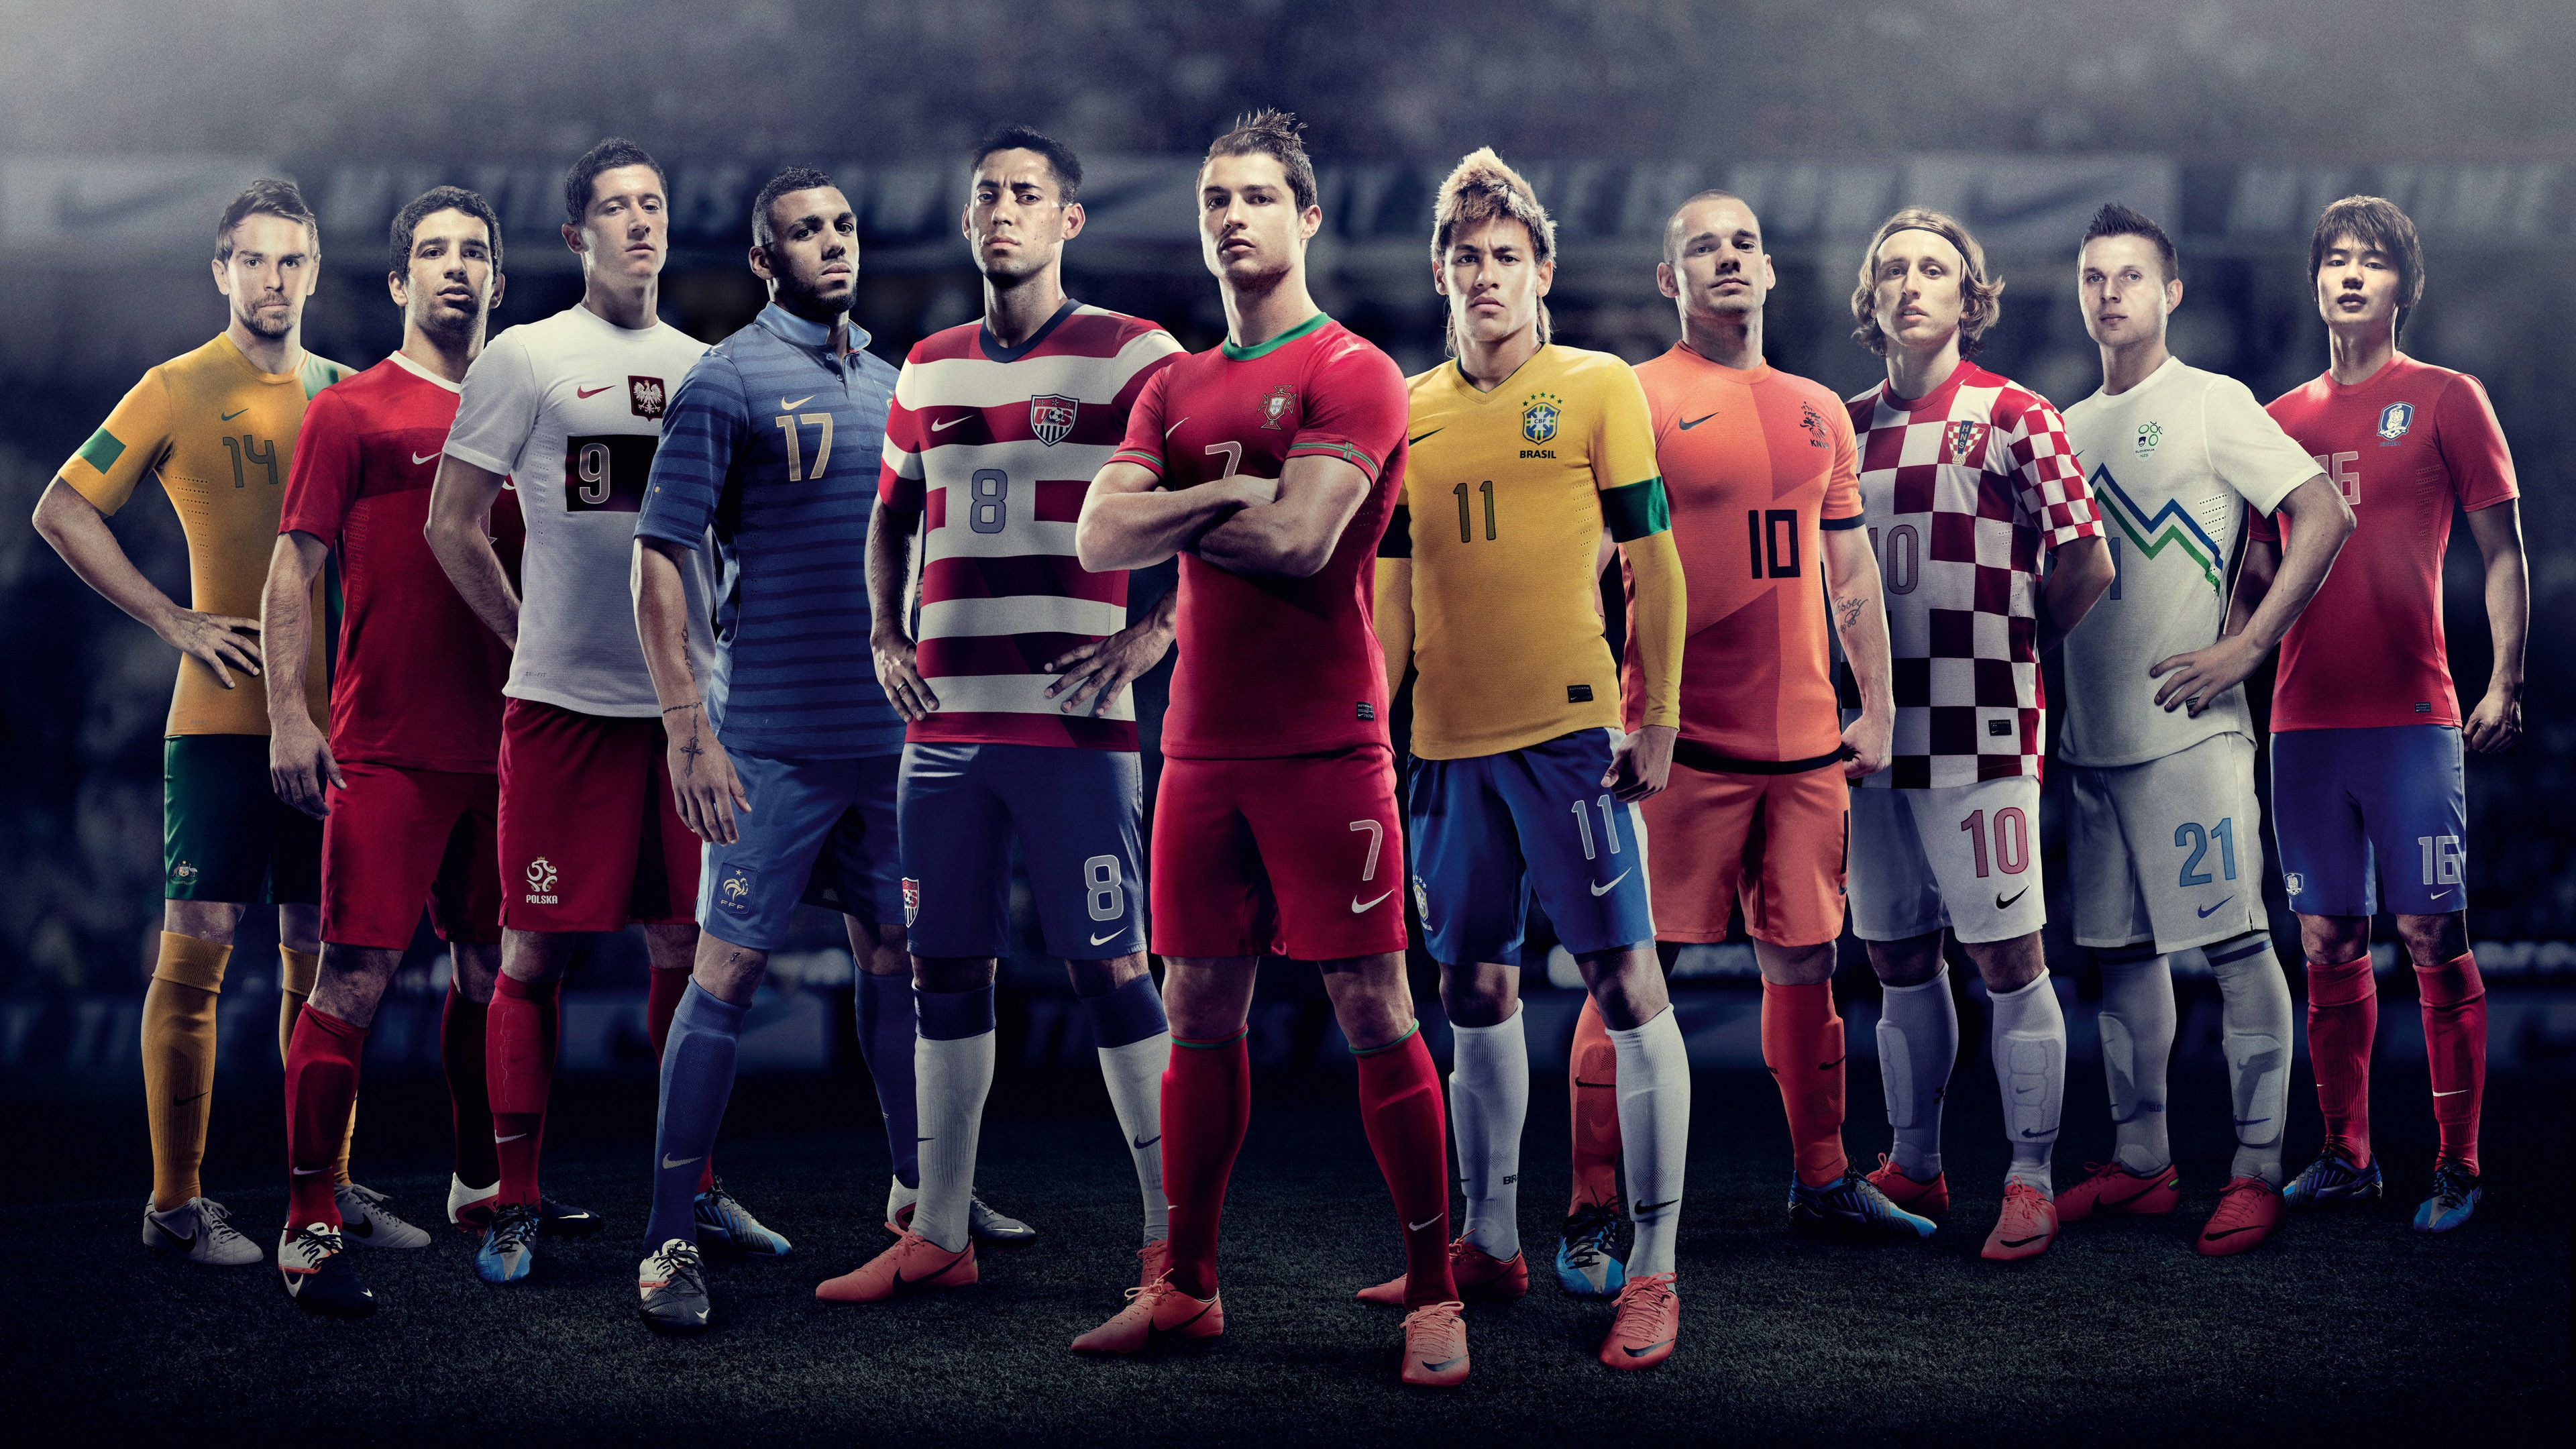 306b814c 3840x2160 Available Downloads | a | Nike football, Football ...